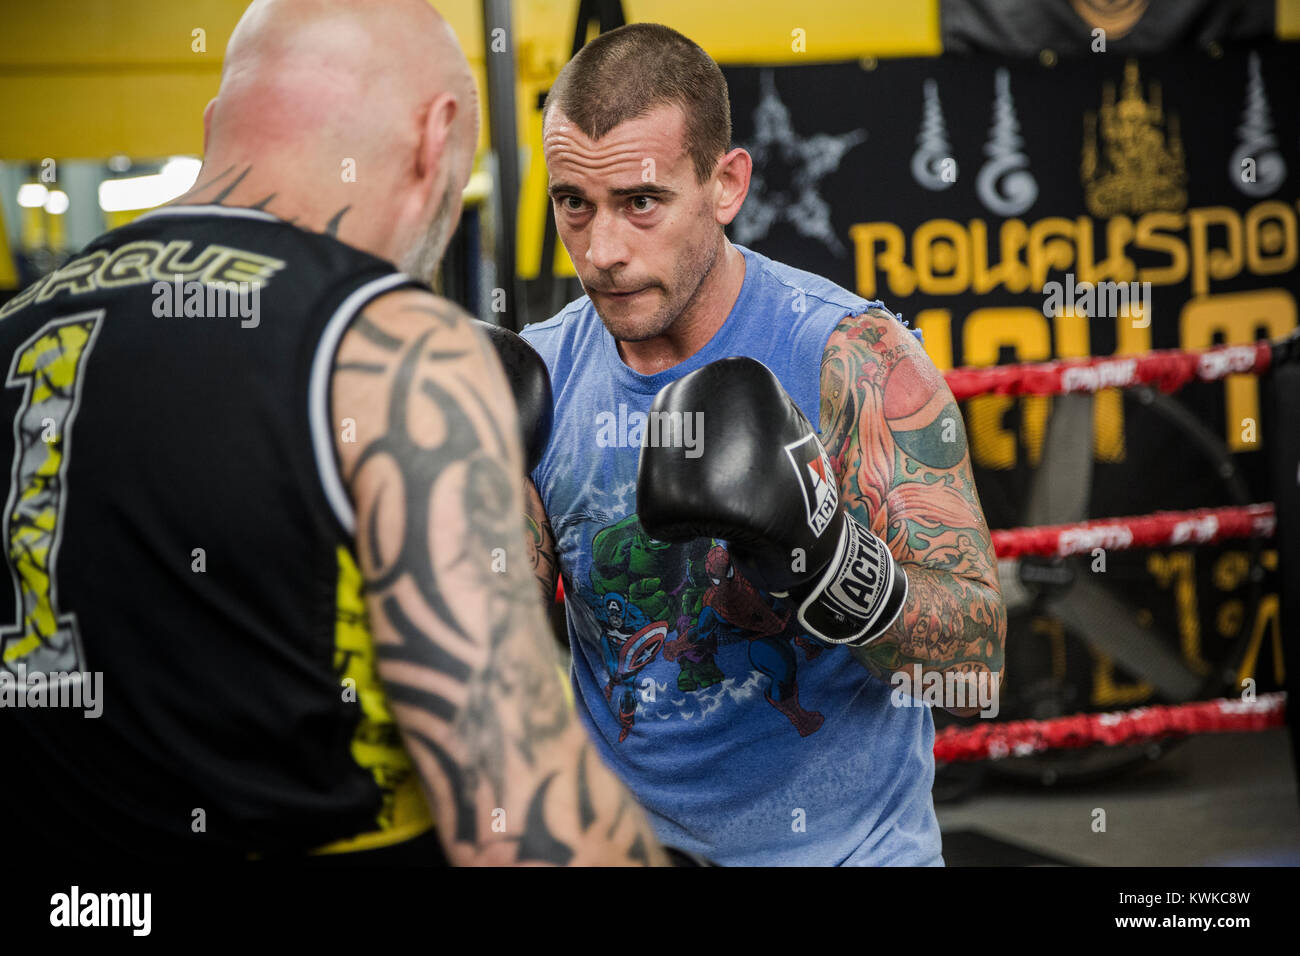 Former WWF Wrestler, CM Punk (Phil Brooks) trains at Roufusport Gym and MMA Academy in Milwaukee, Wisconsin. - Stock Image